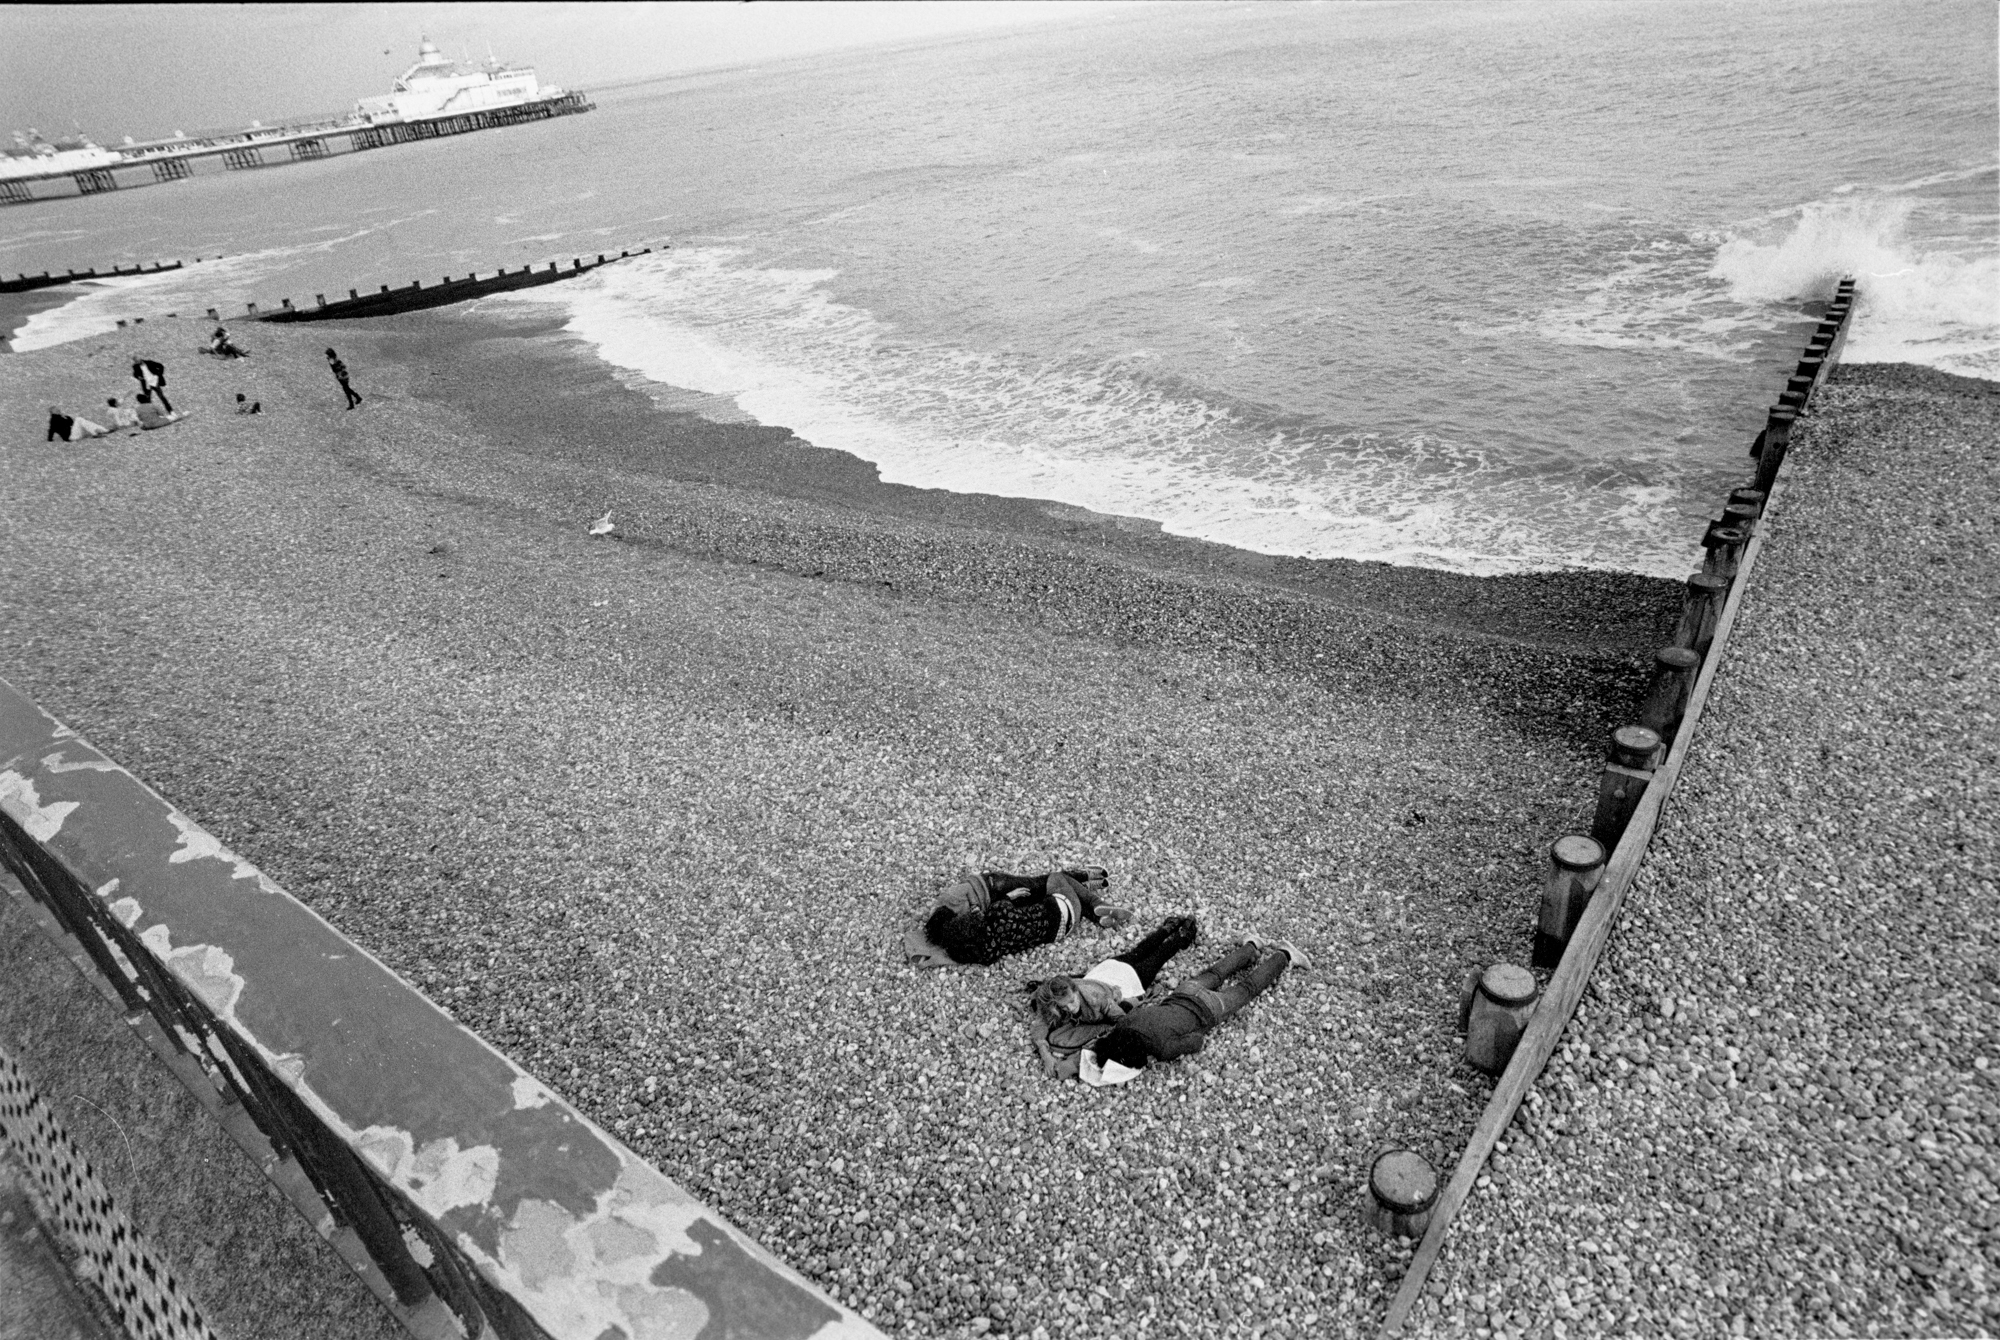 AT THE SEASIDE - People on the Beach - Eastbourne - 2010